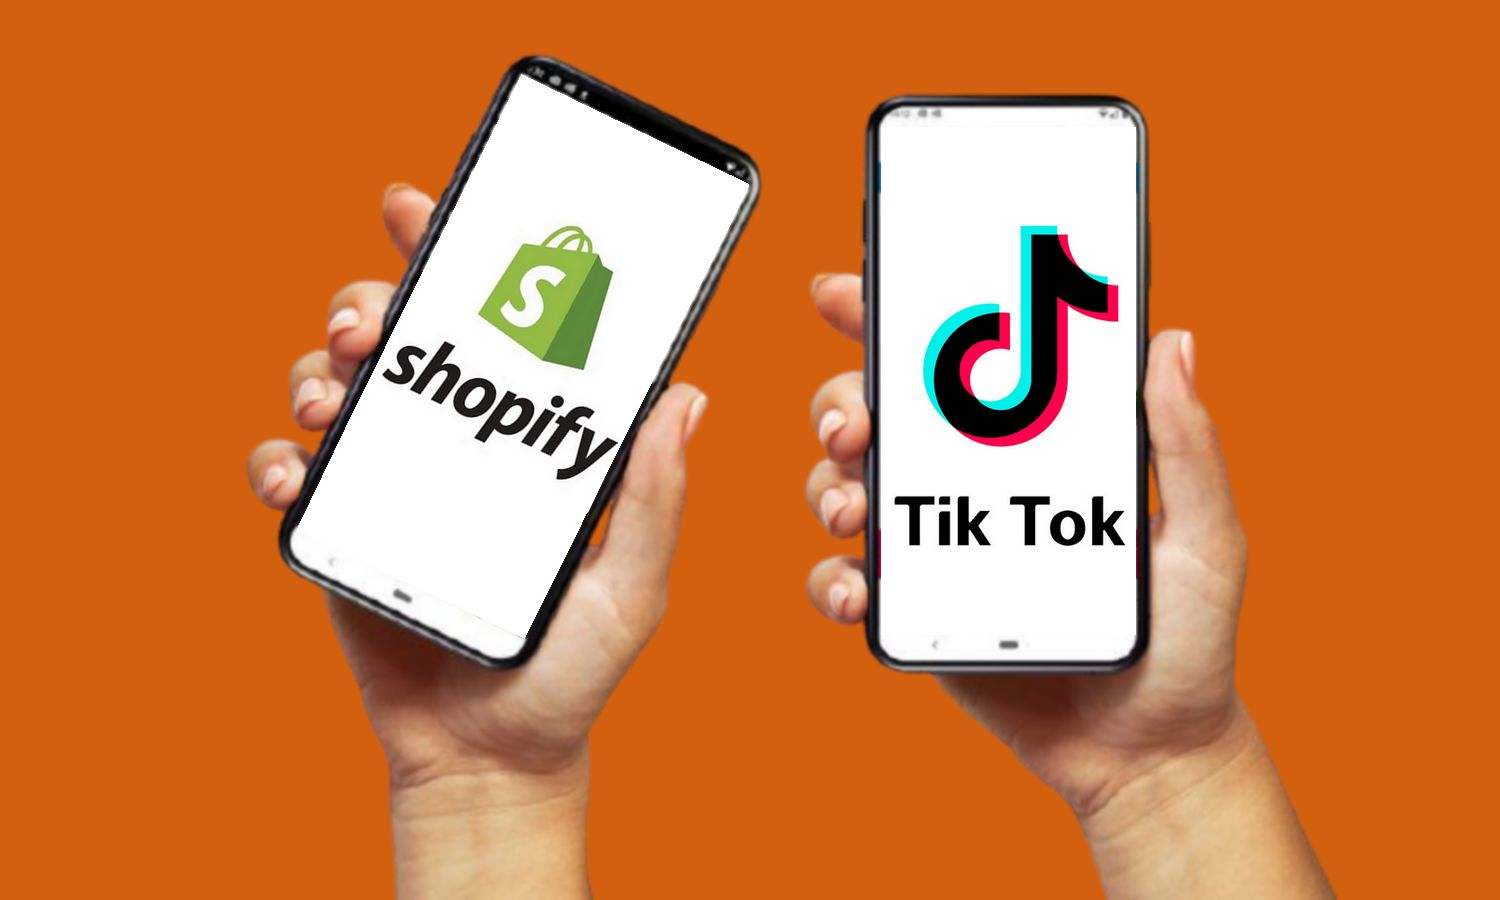 7 inspiring things to learn from the Shopify & TikTok partnership